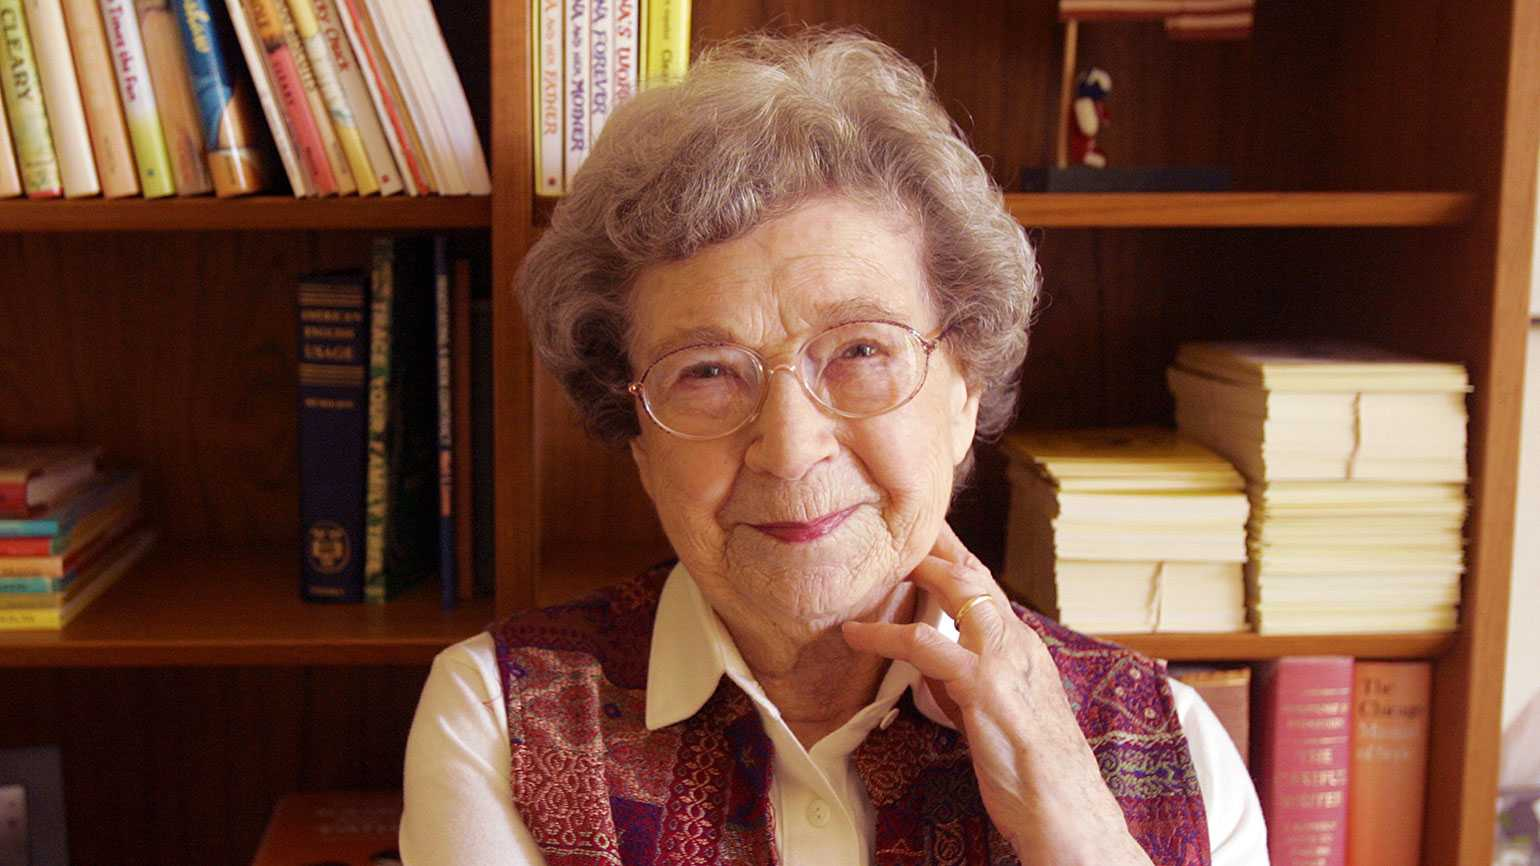 Author Beverly Cleary; photo by San Francisco Chronicle/Hearst Newspapers via Getty Images